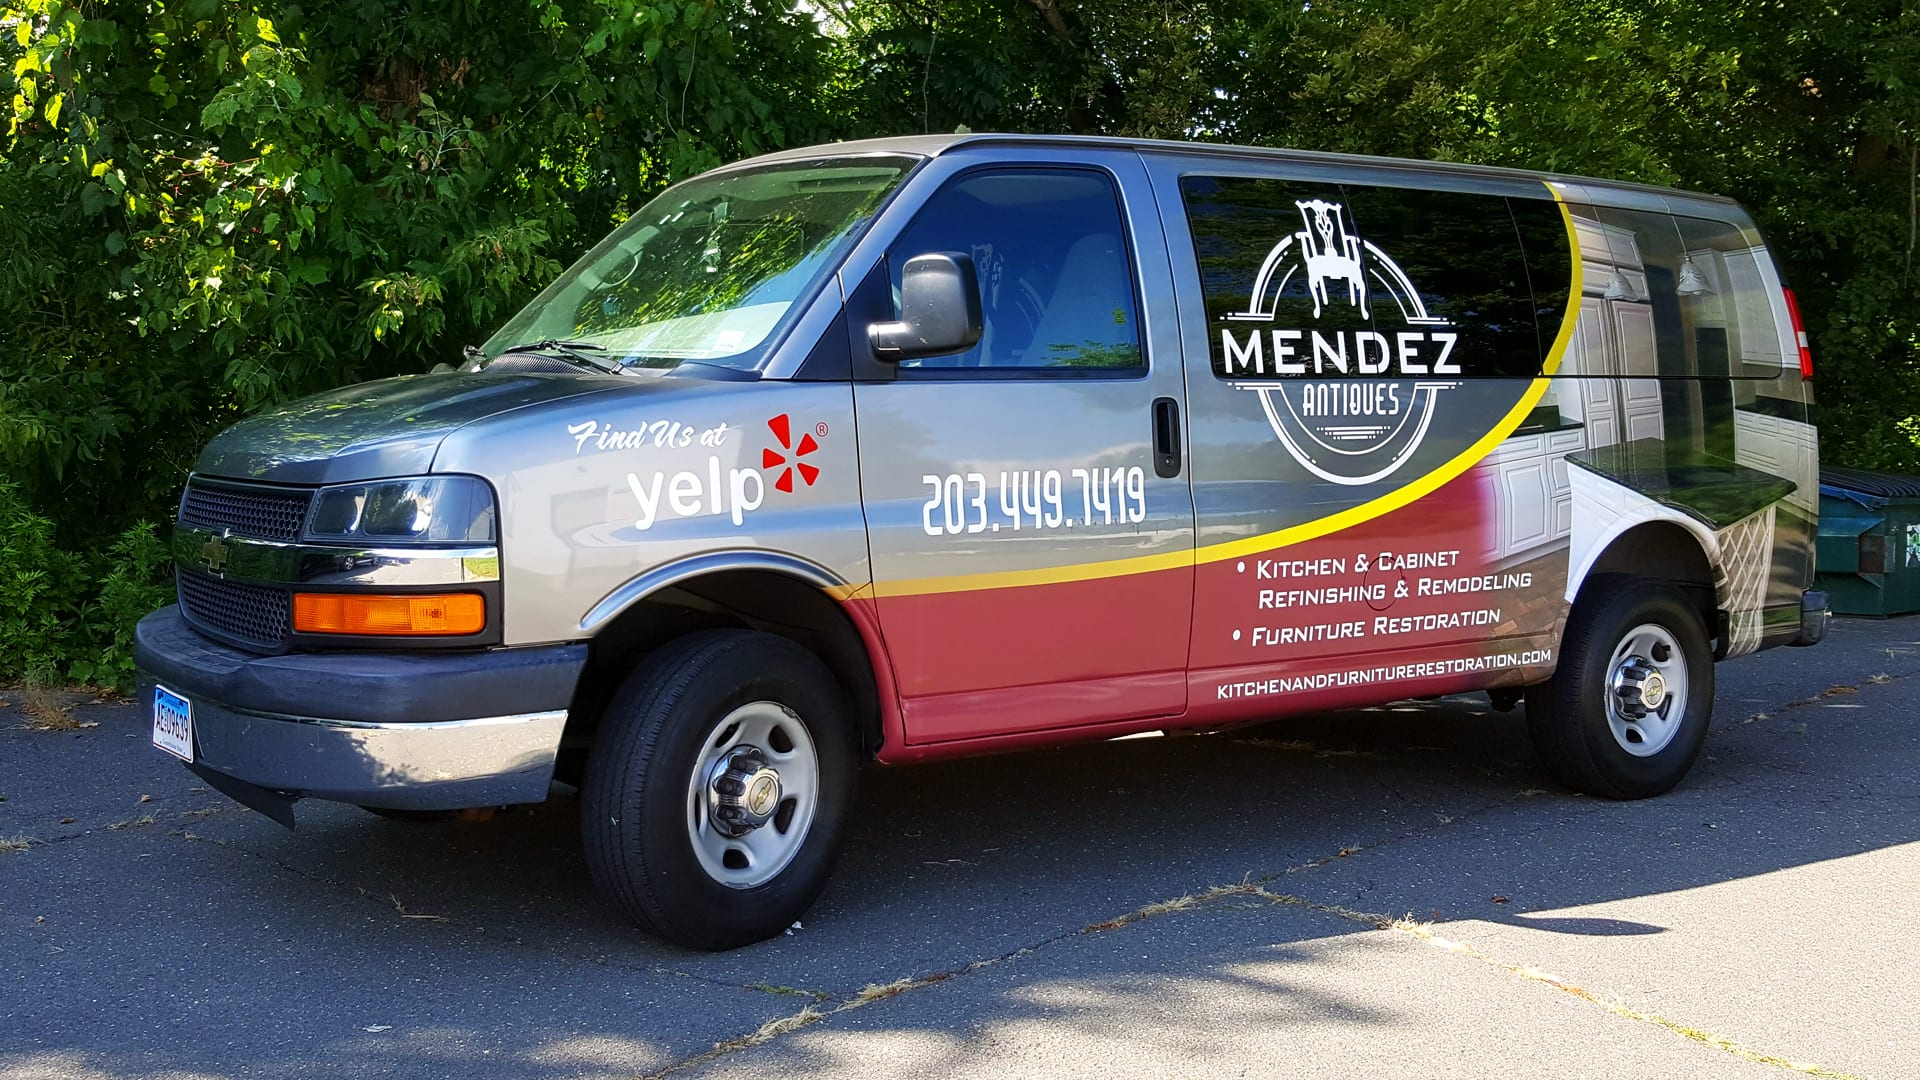 Mendez antiques - Full Van wrap - Vehicle wrap